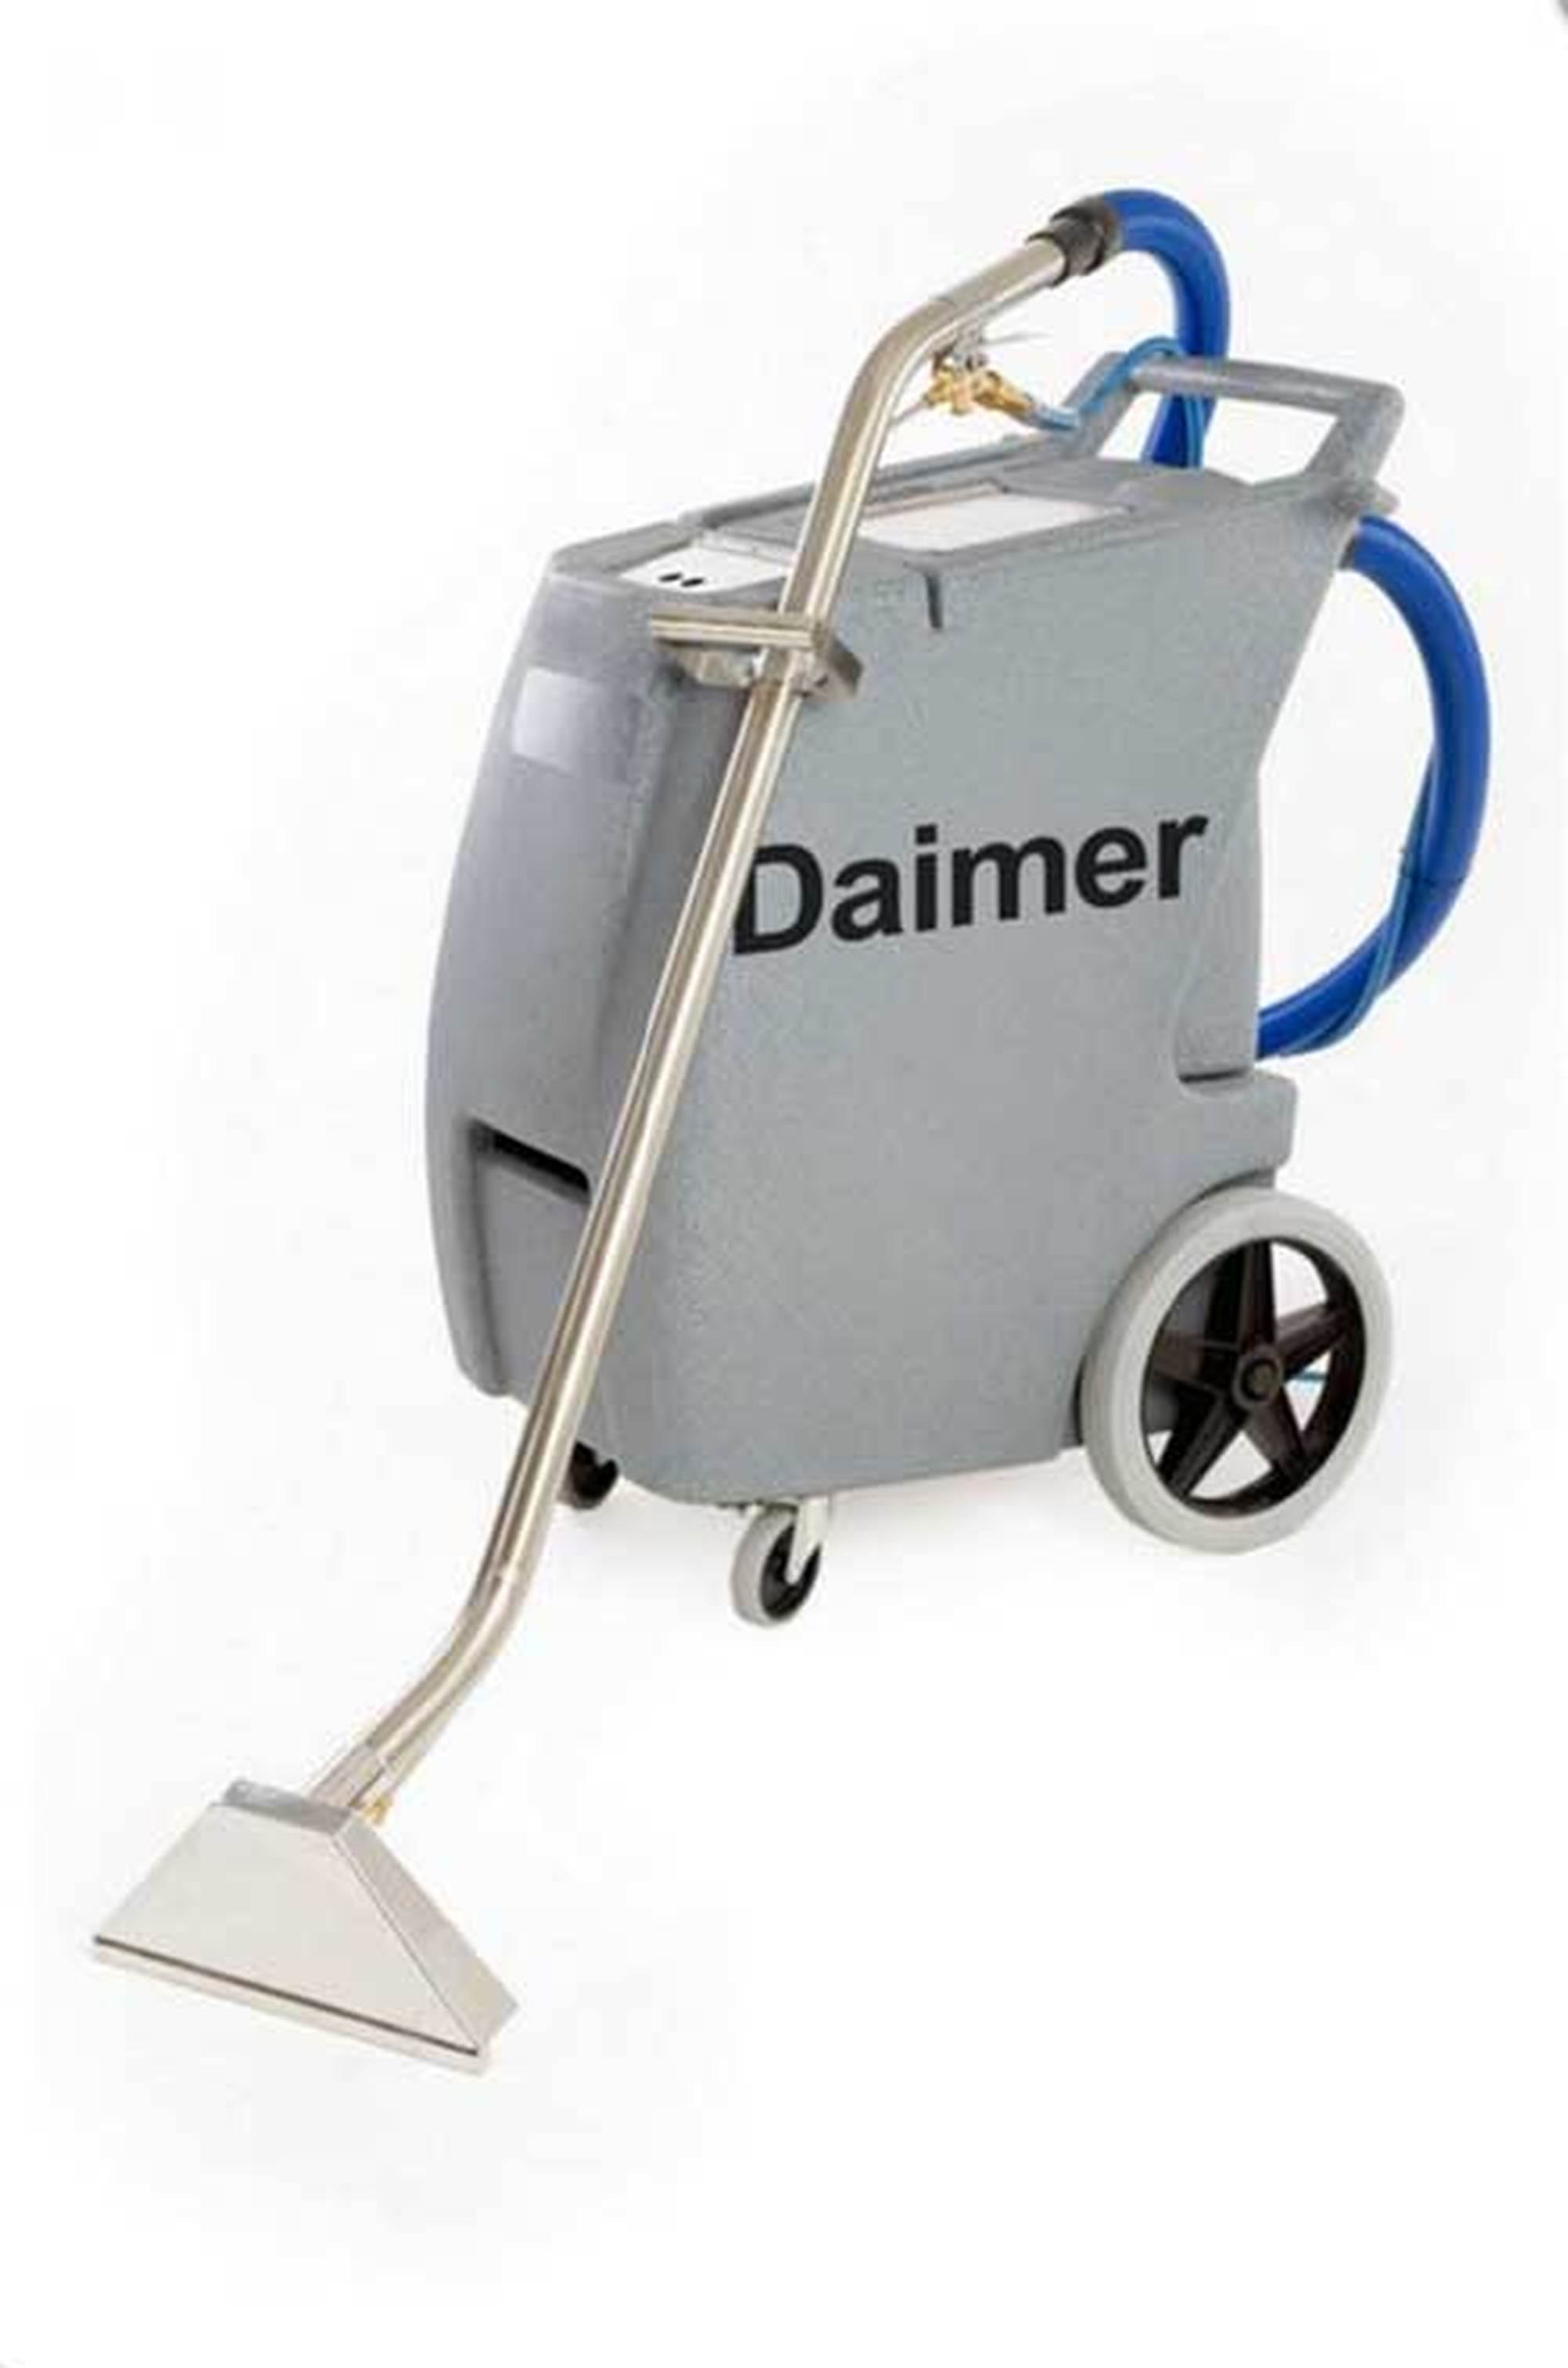 Rent Or Hire A Daimer Carpet Cleaner In Malta By Ehl From Kiribisscom X